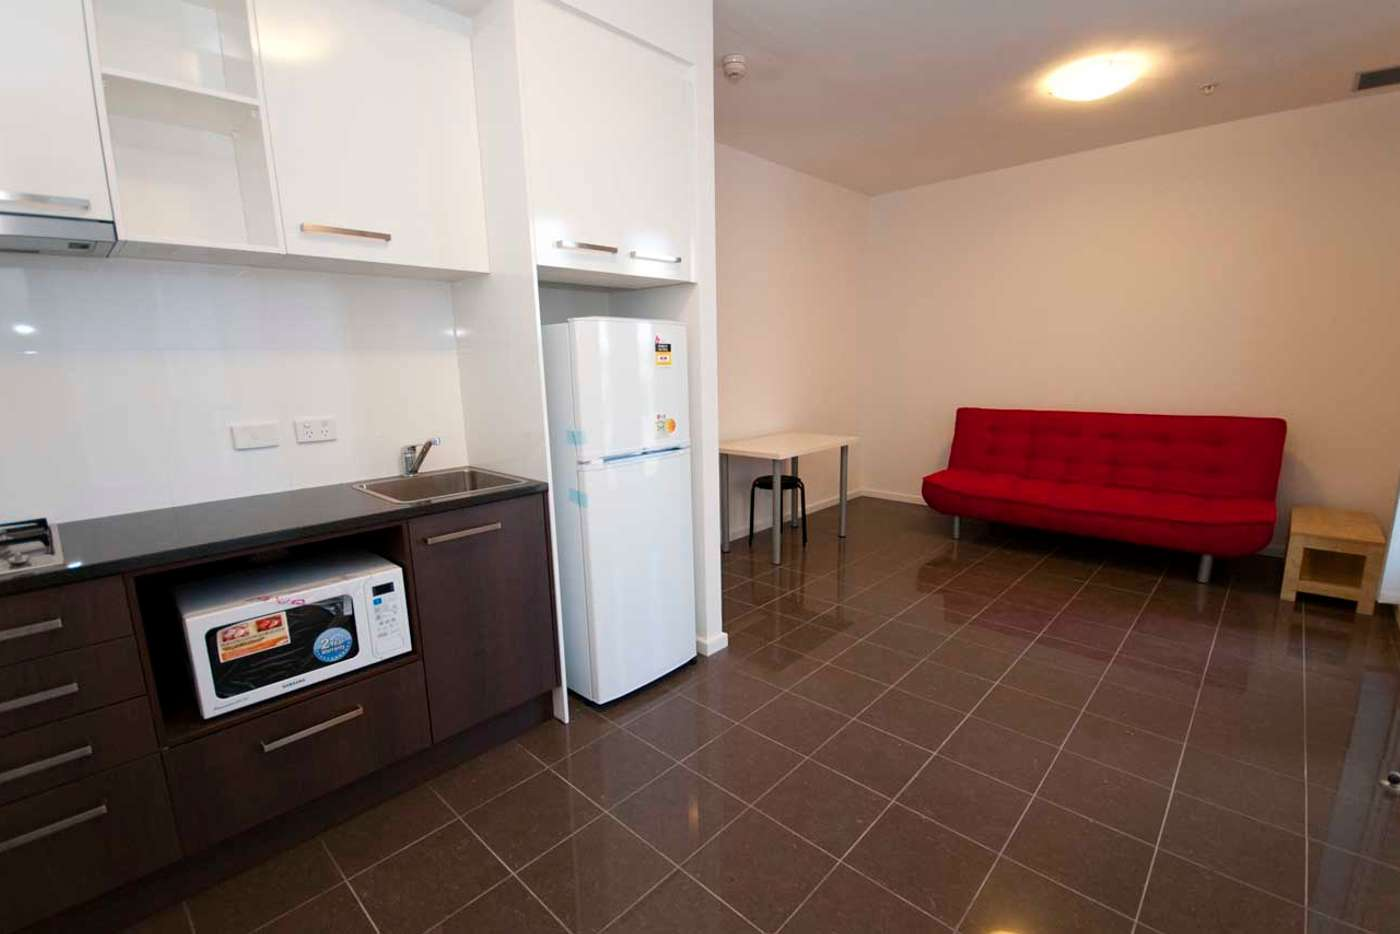 Seventh view of Homely apartment listing, 201/235-237 Pirie St, Adelaide SA 5000